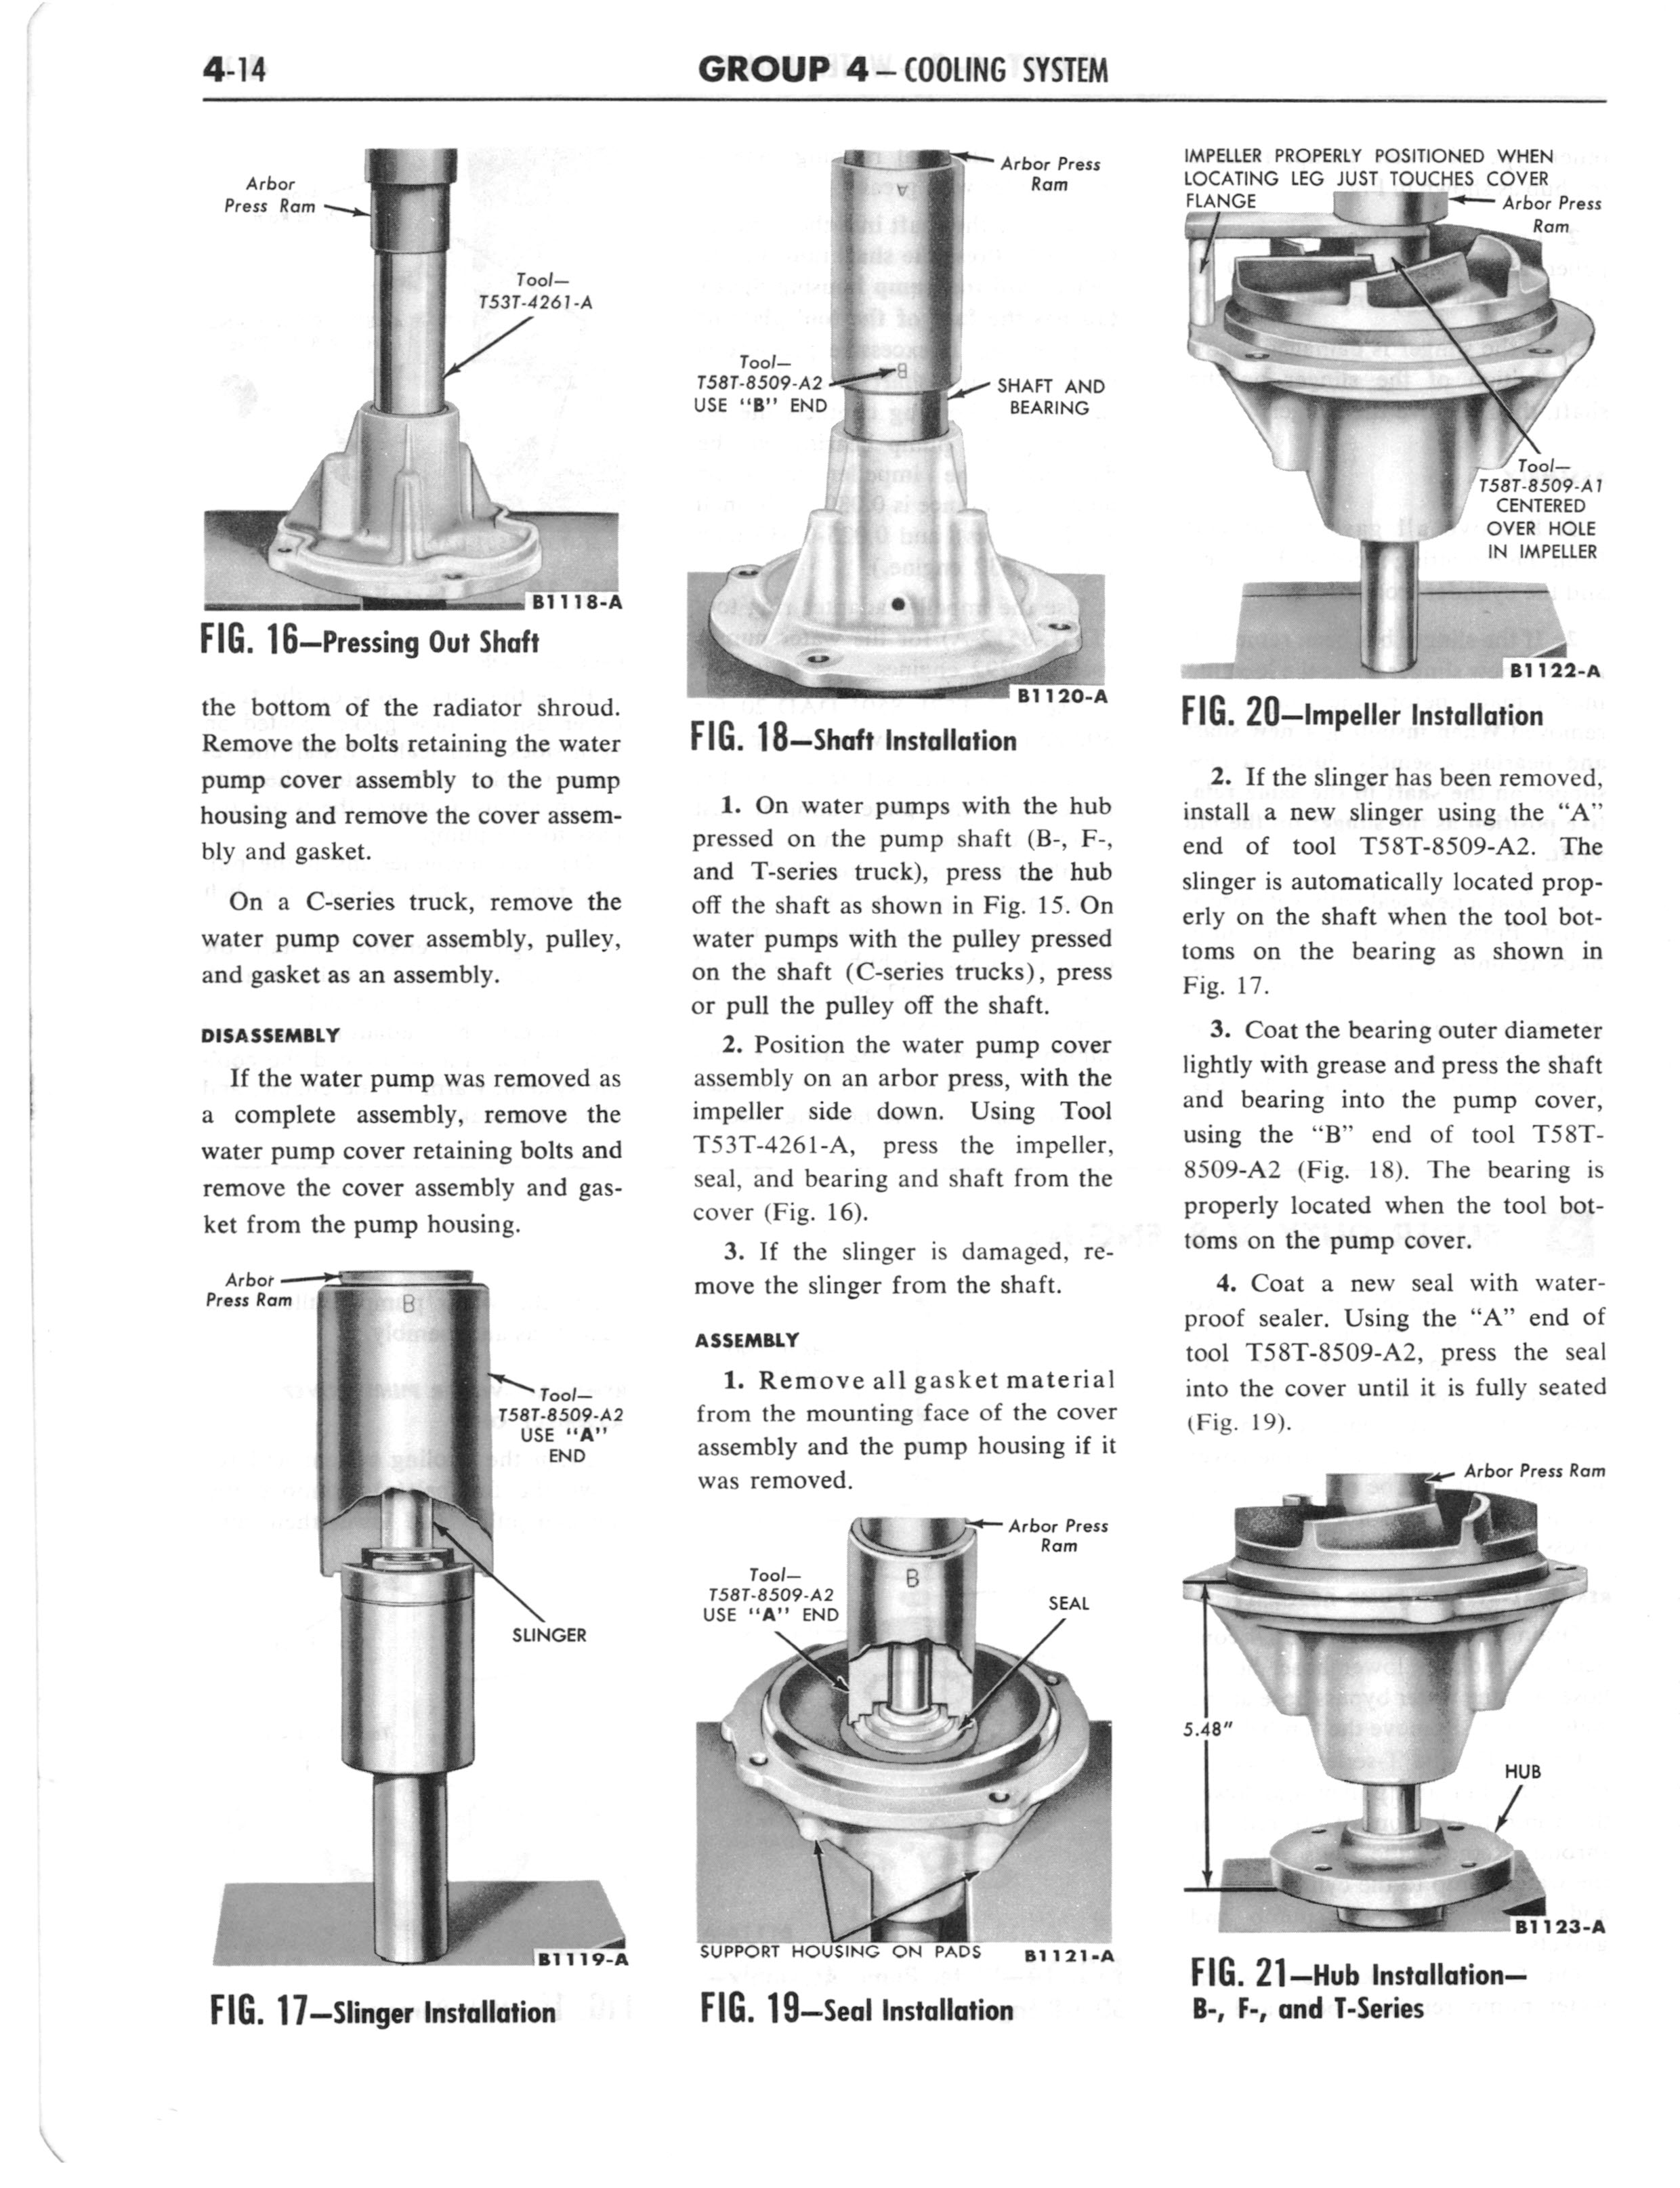 1960 Ford and Mercury Truck Shop Manual page 209 of 641